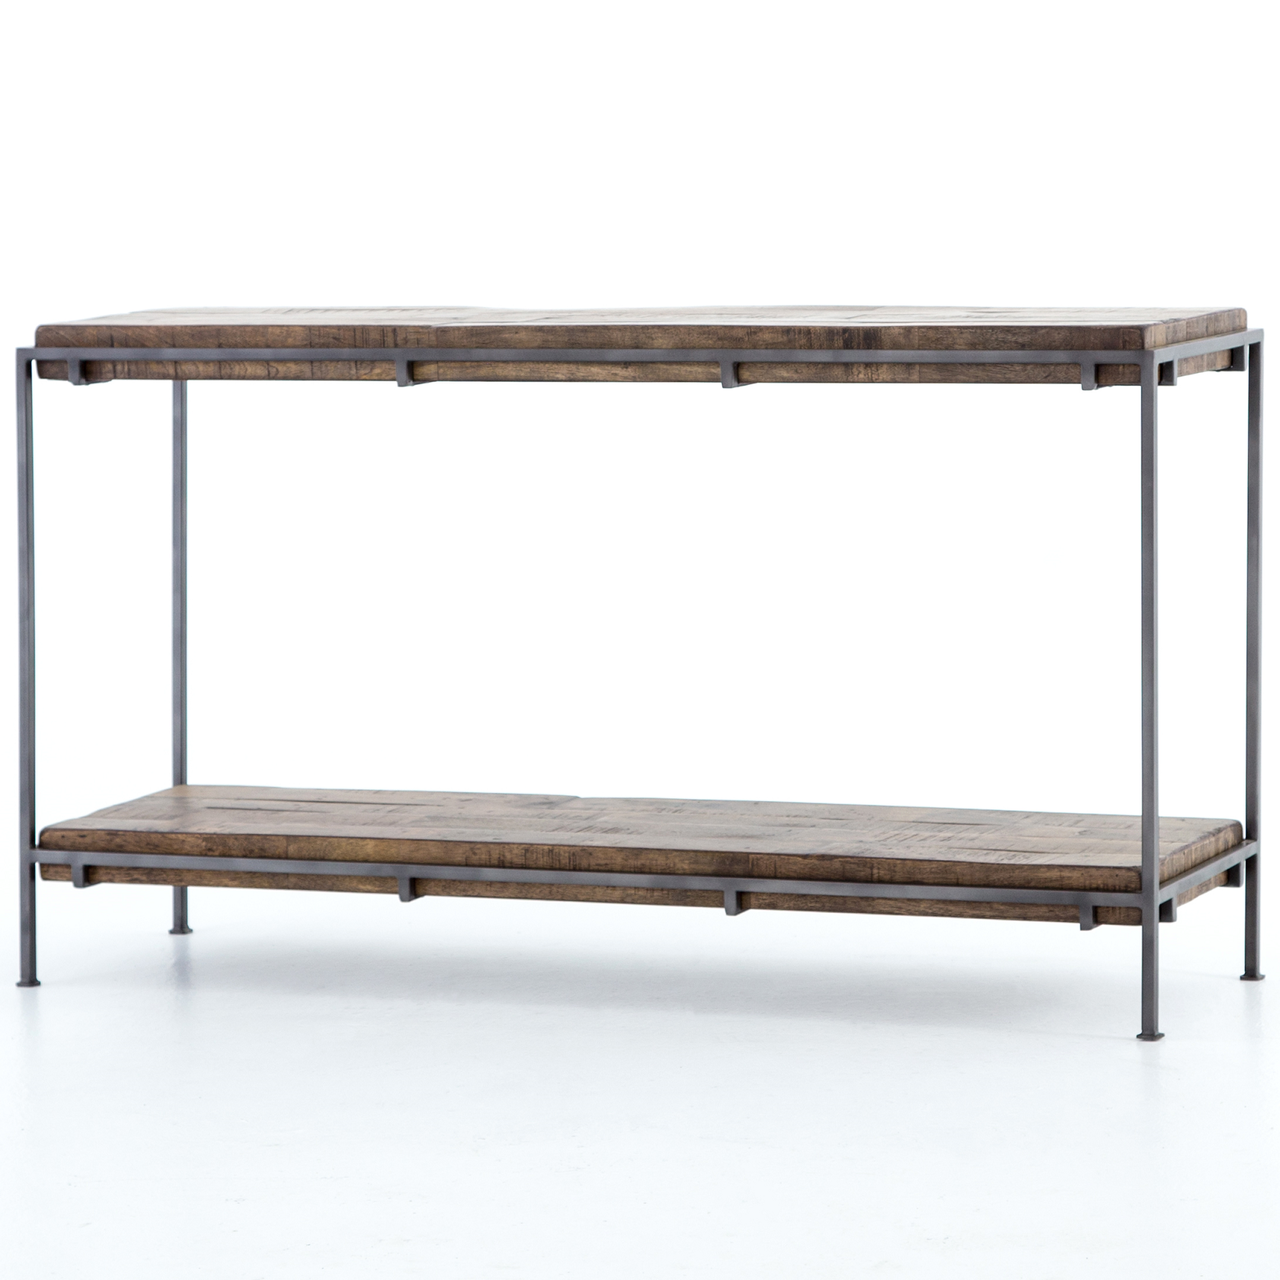 Delightful Simien Iron Frame + Slab Wood Console Table